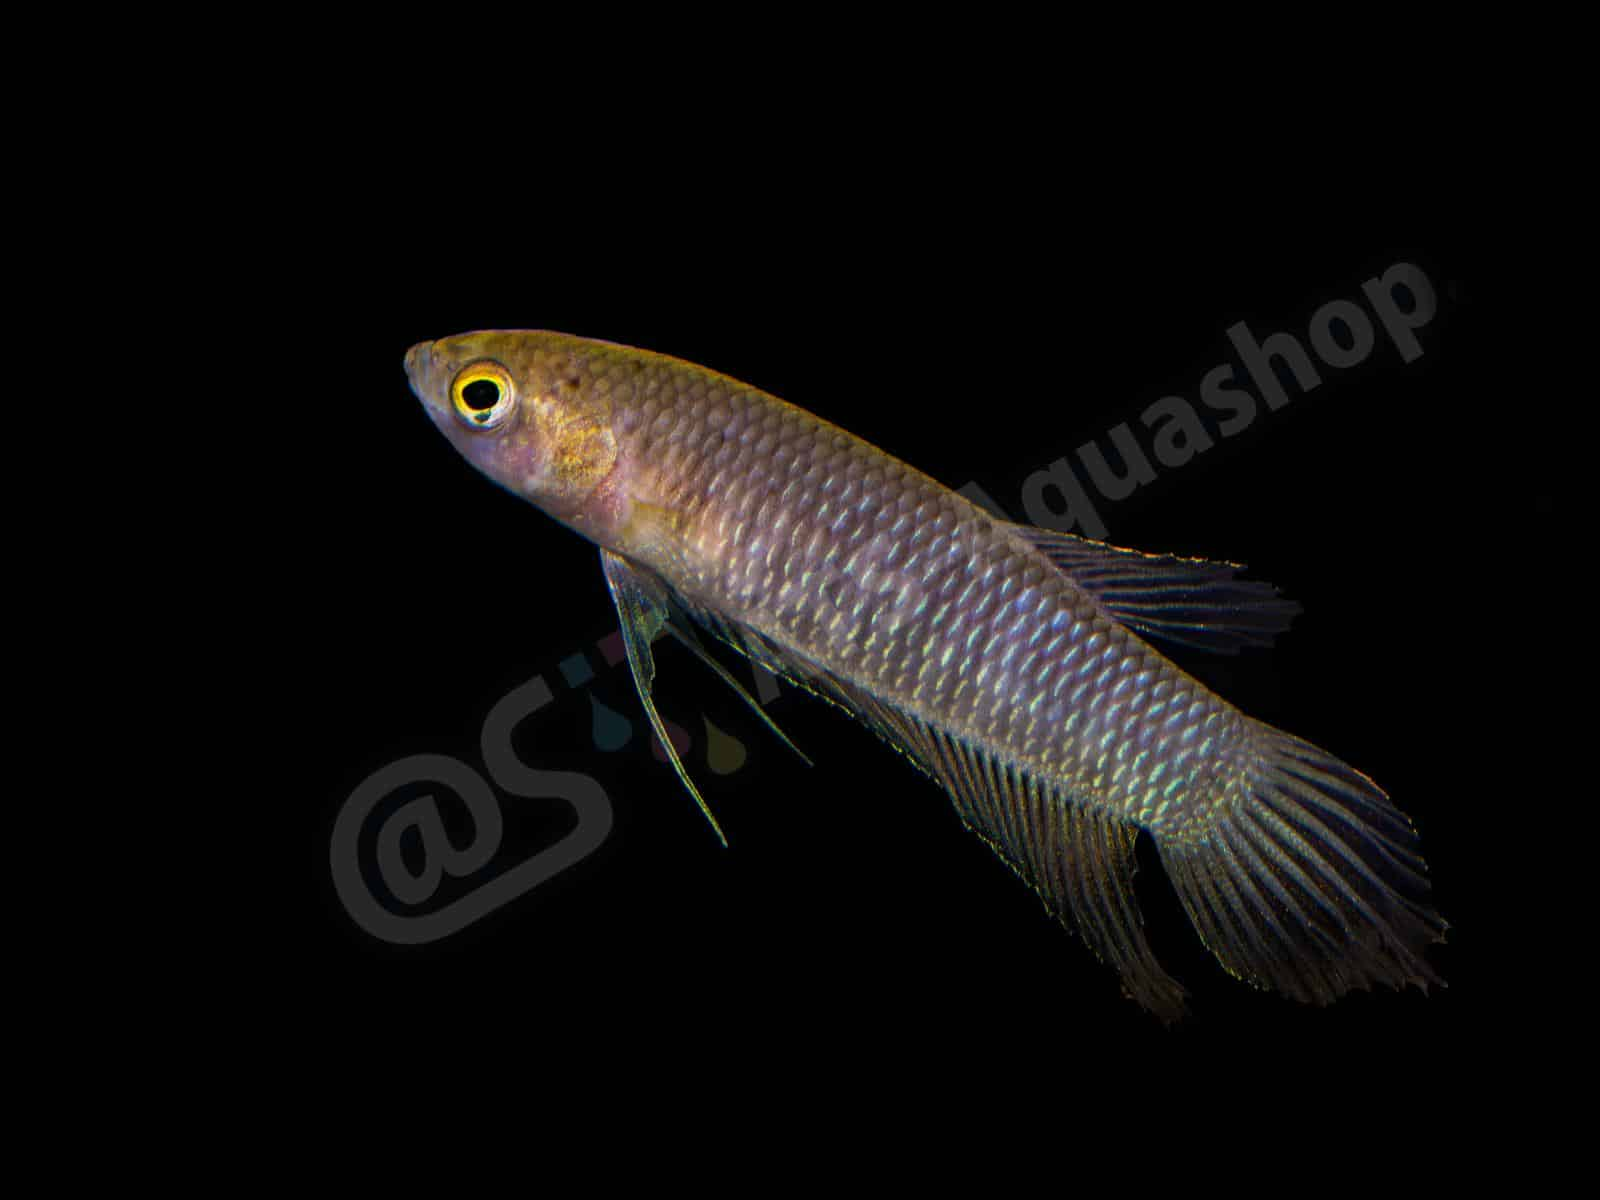 betta simorum andreas tanke 0110 10